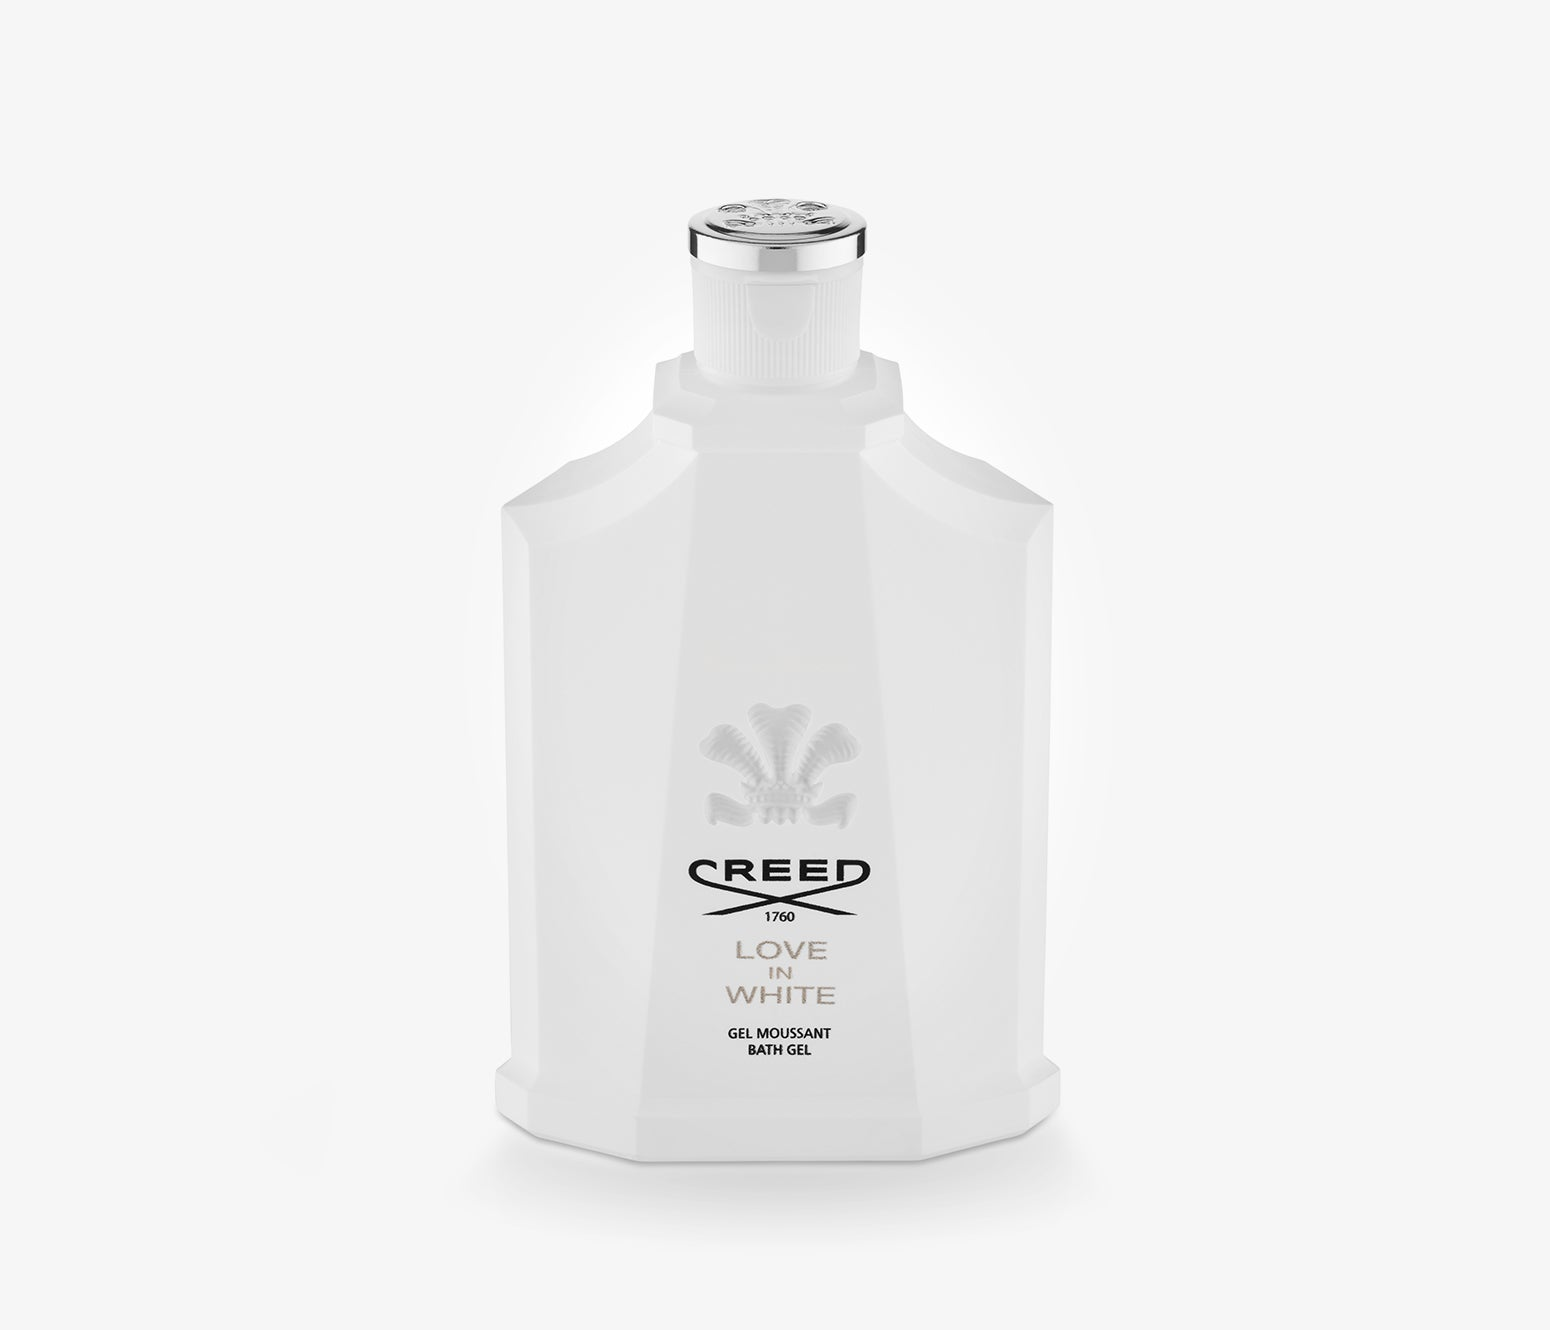 Creed - Love in White Shower Gel - 200ml - PGX7653 - product image - Body Wash - Les Senteurs